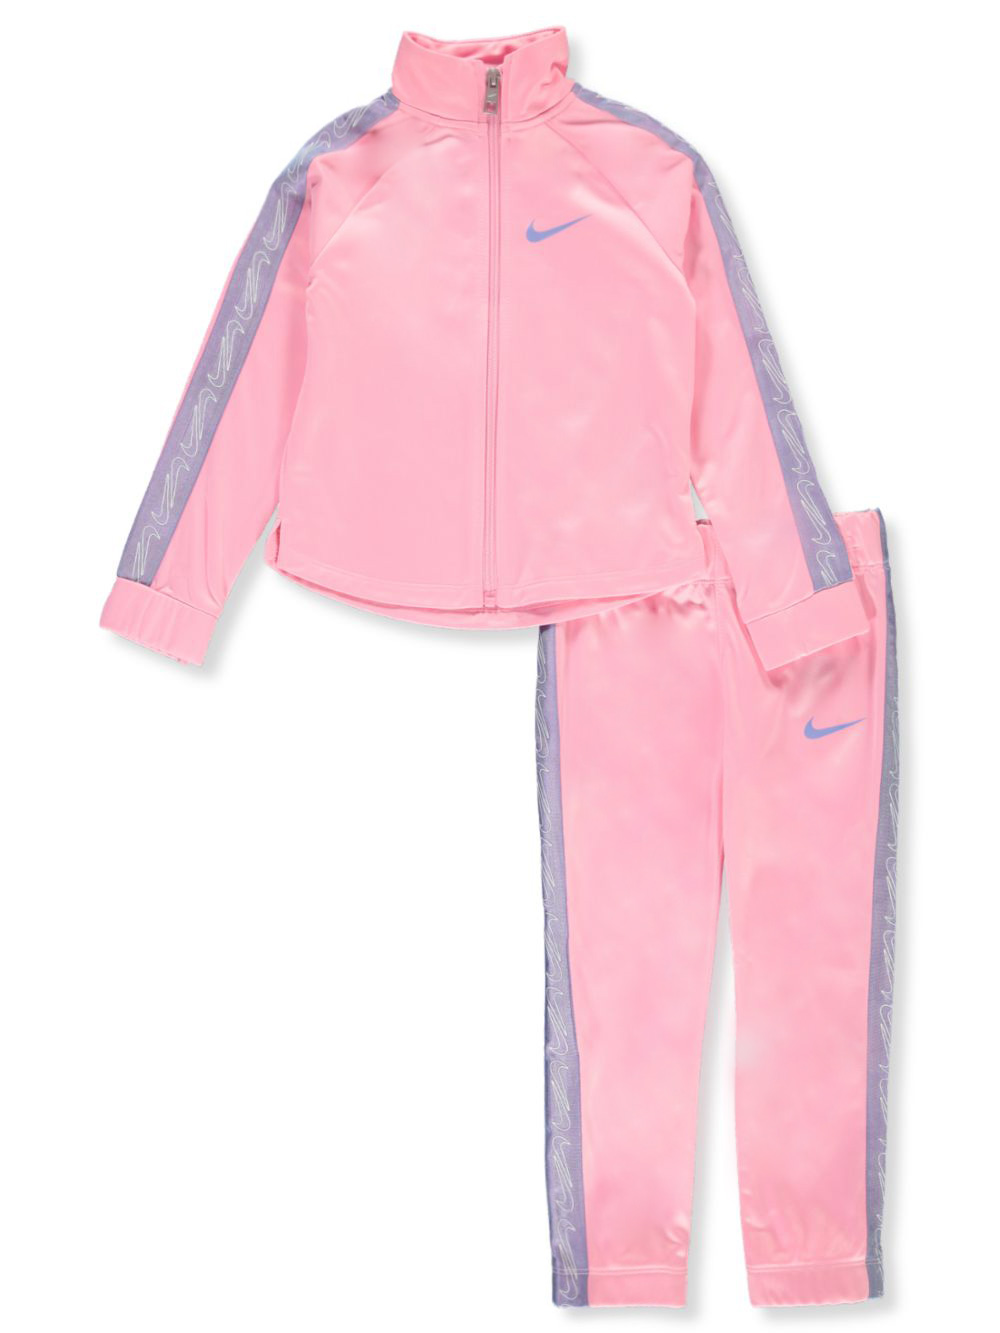 Girls' 2-Piece Tracksuit Outfit